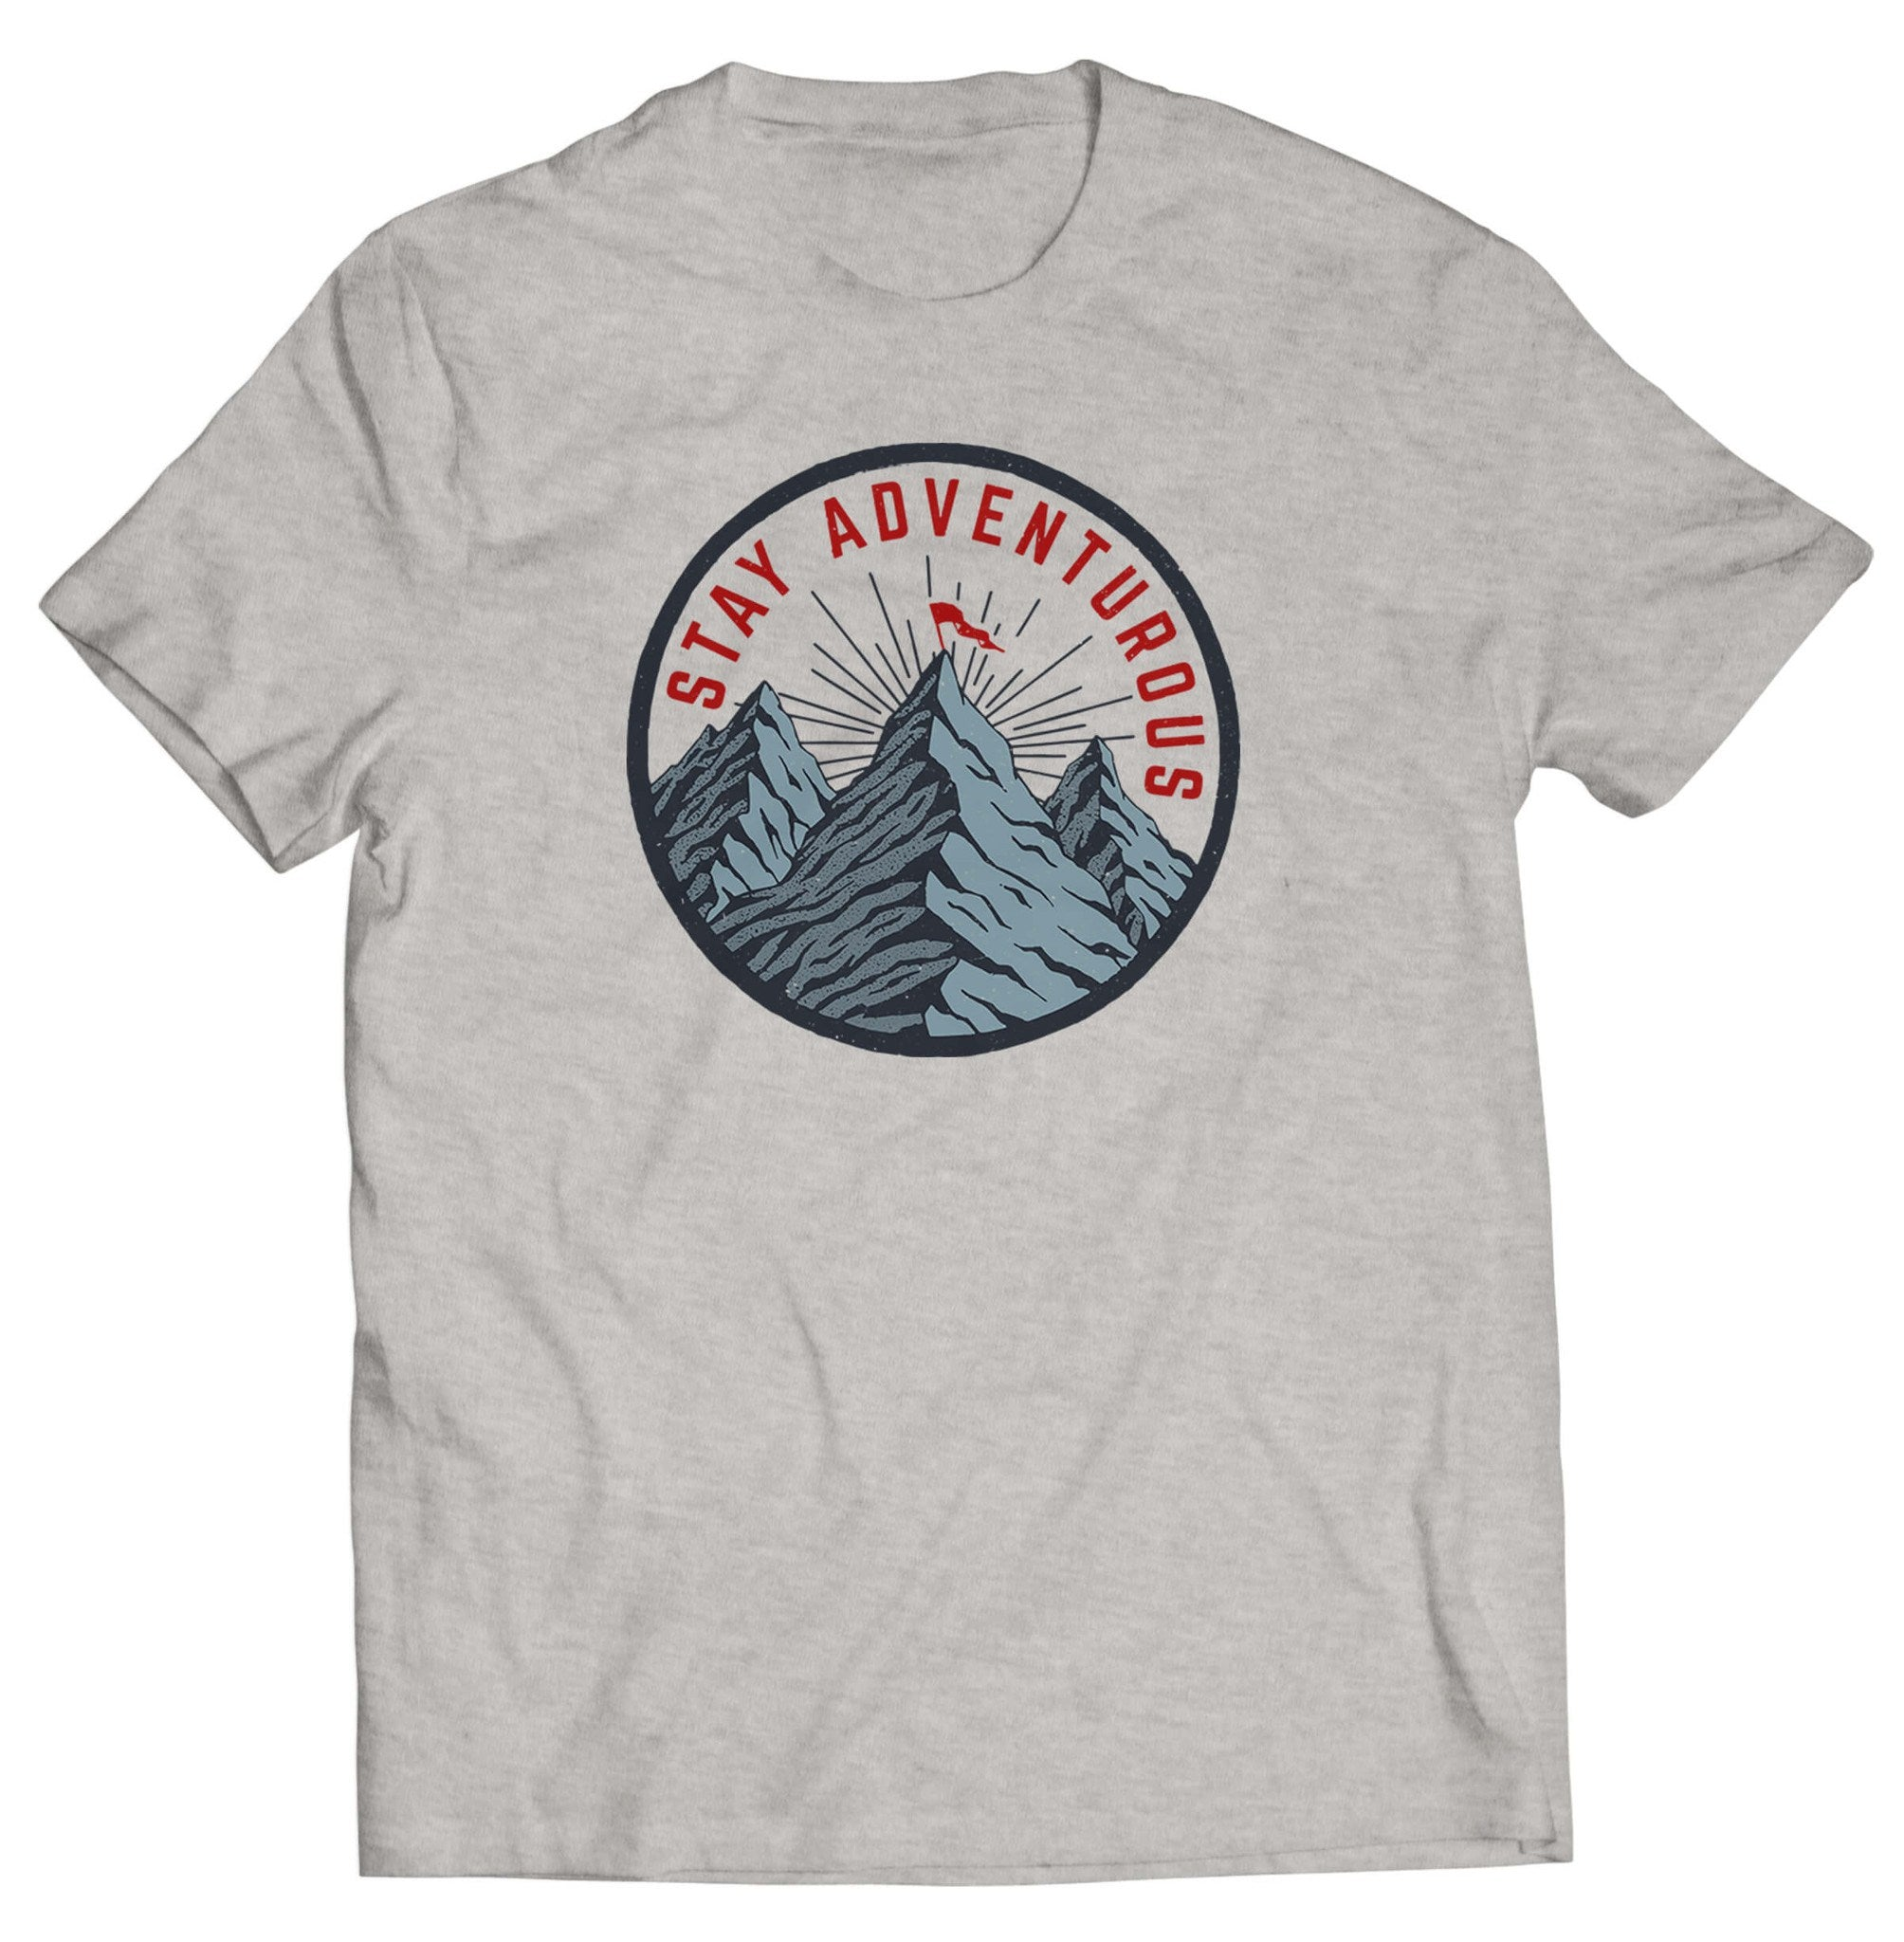 Stay Adventurous Tee - Echtra Outfitters  - 2